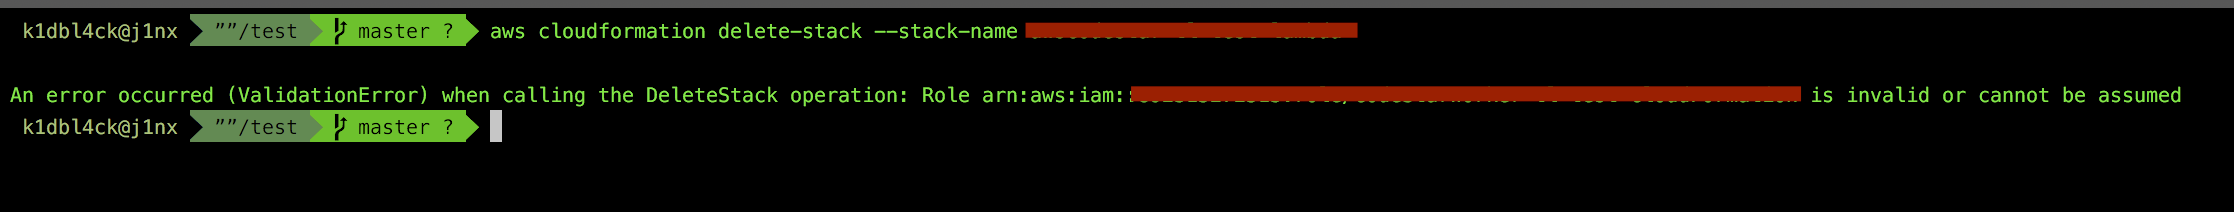 AWS Cloud Formation: role (arn:aws:iam:xxx) is invalid or cannot be